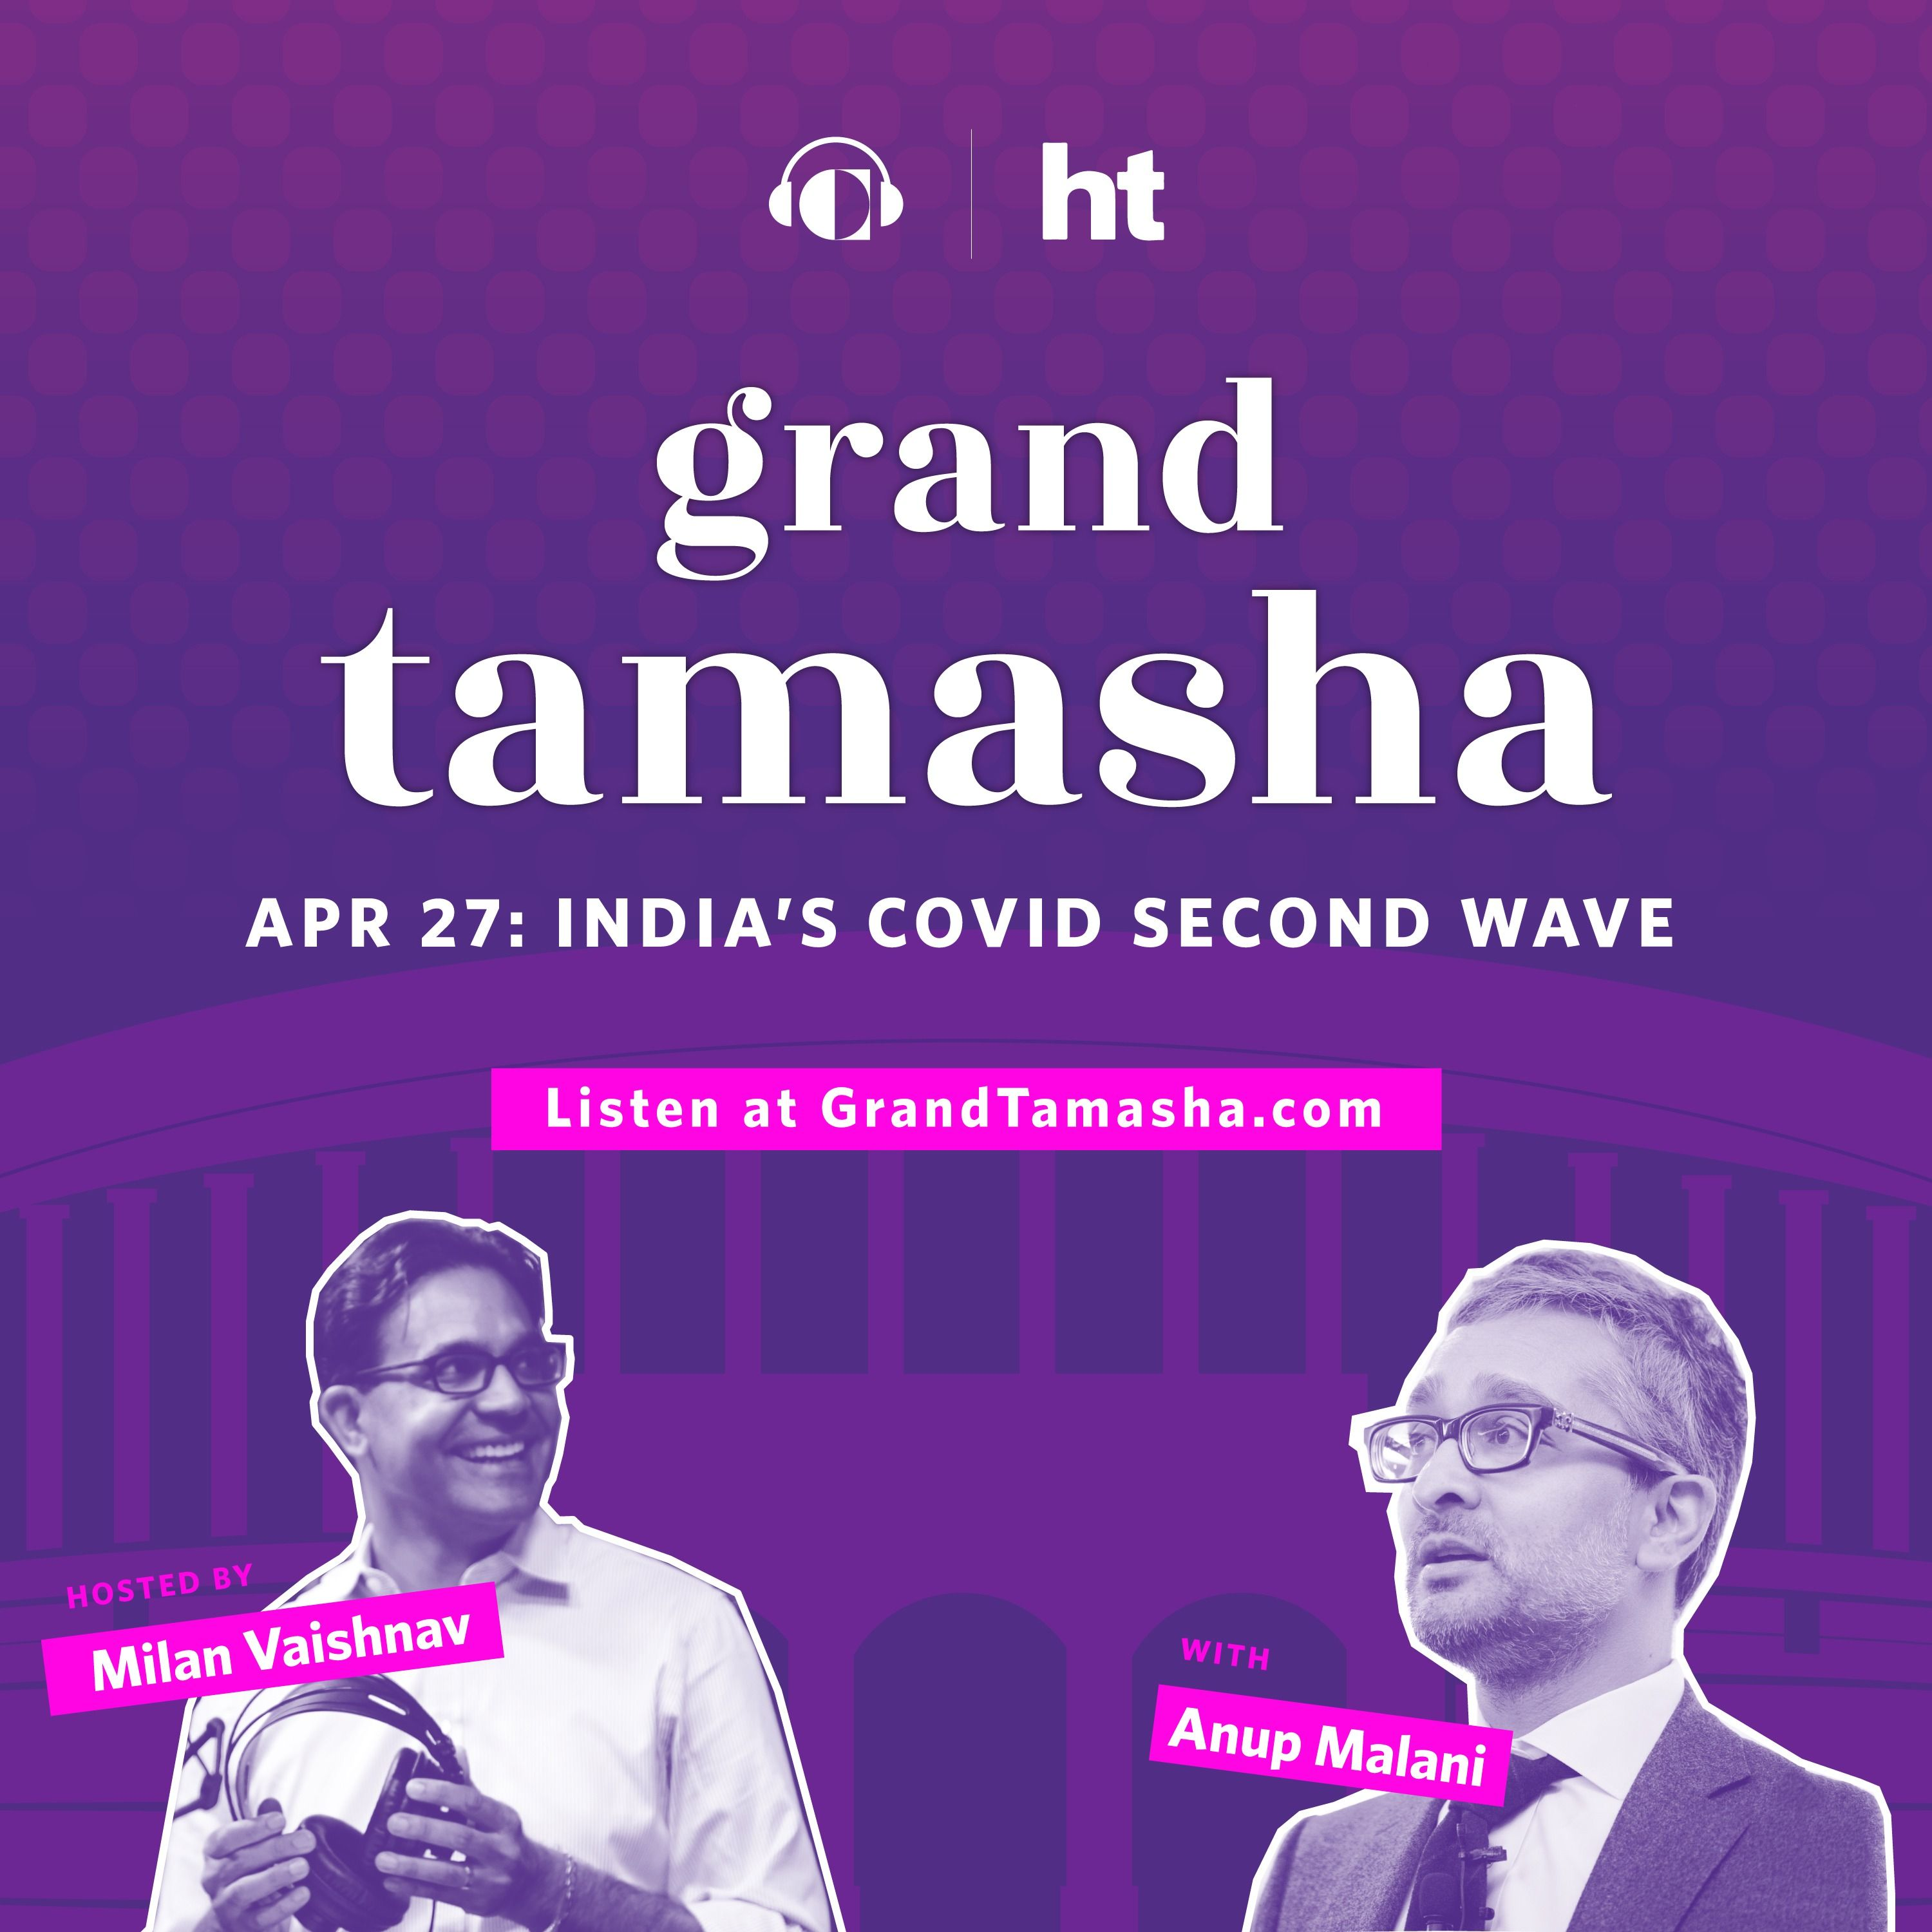 Anup Malani on India's COVID Second Wave